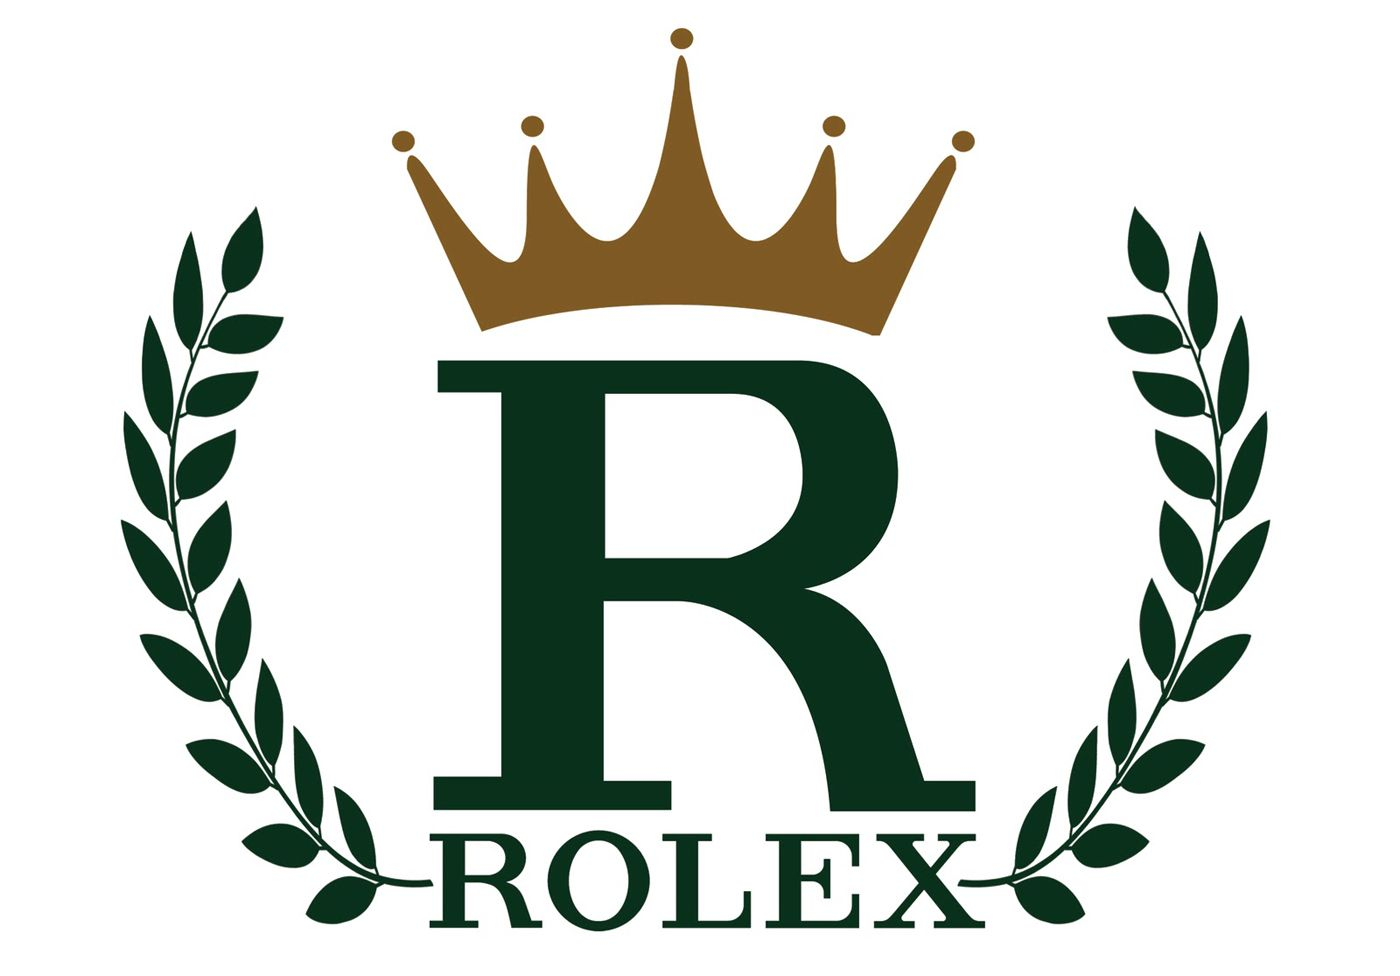 Rolex Logo - Rolex Logo, Rolex Symbol, Meaning, History and Evolution